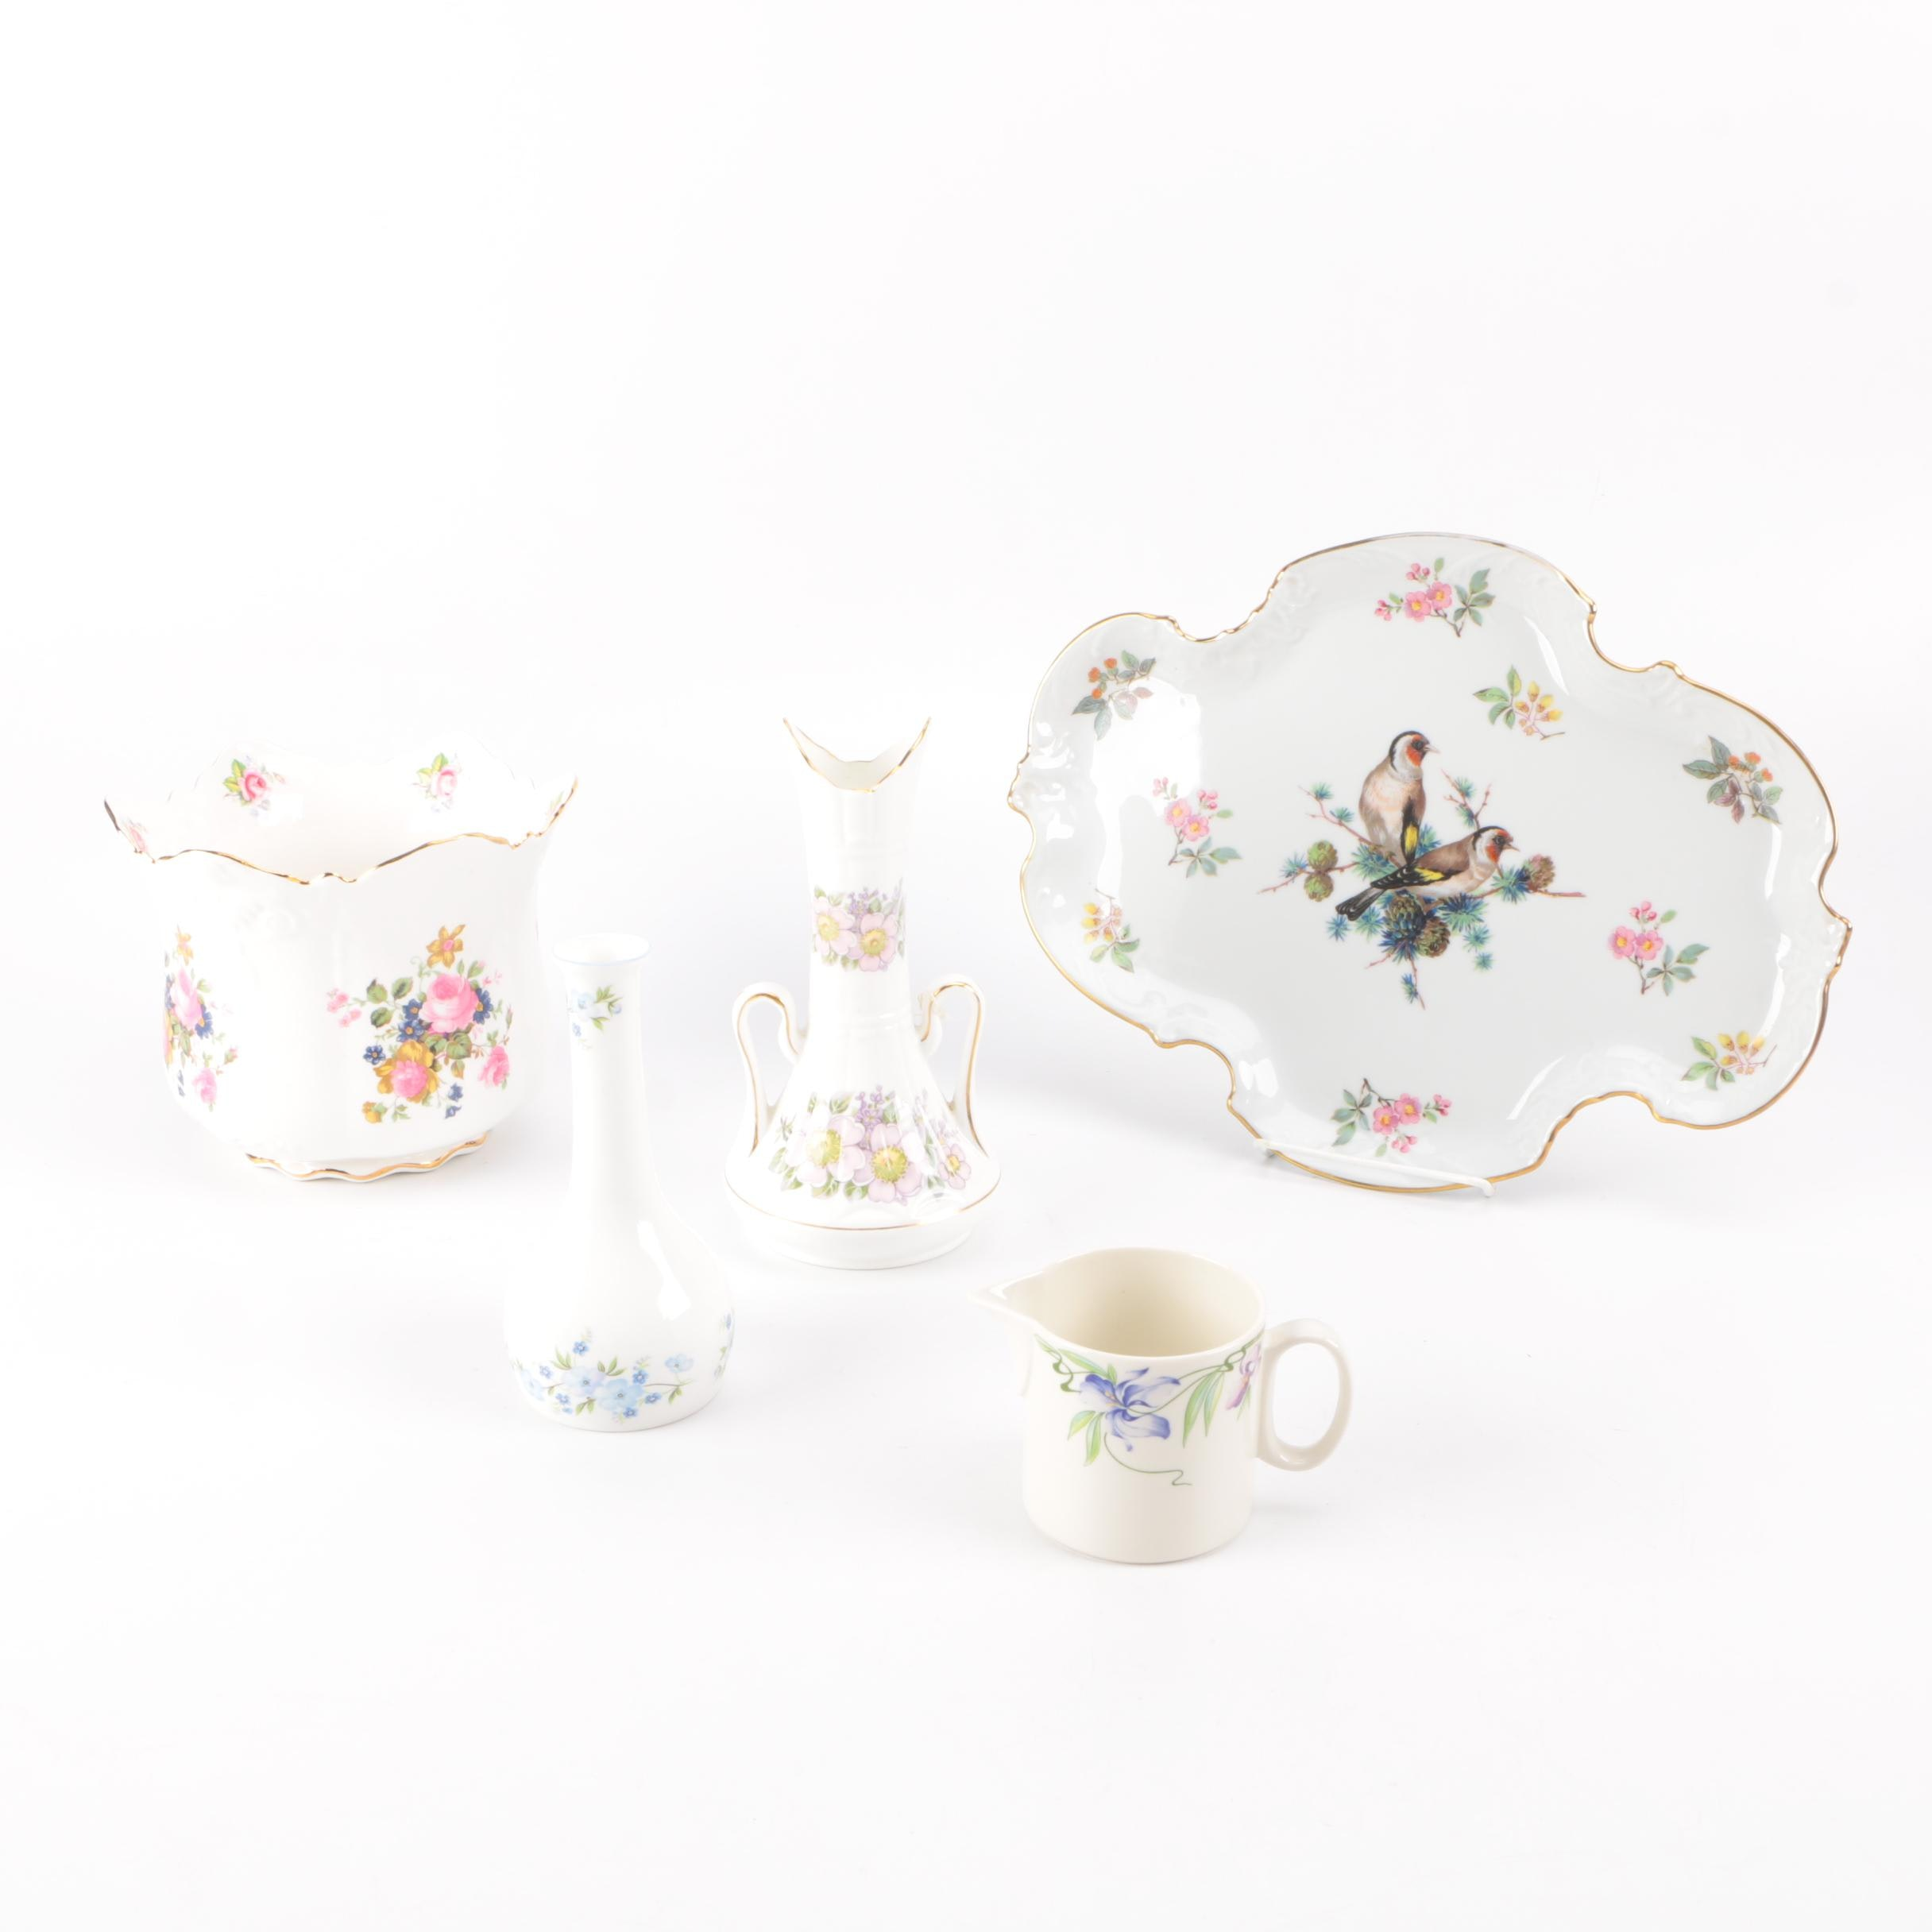 Assortment of Bone China Serveware including Limoges